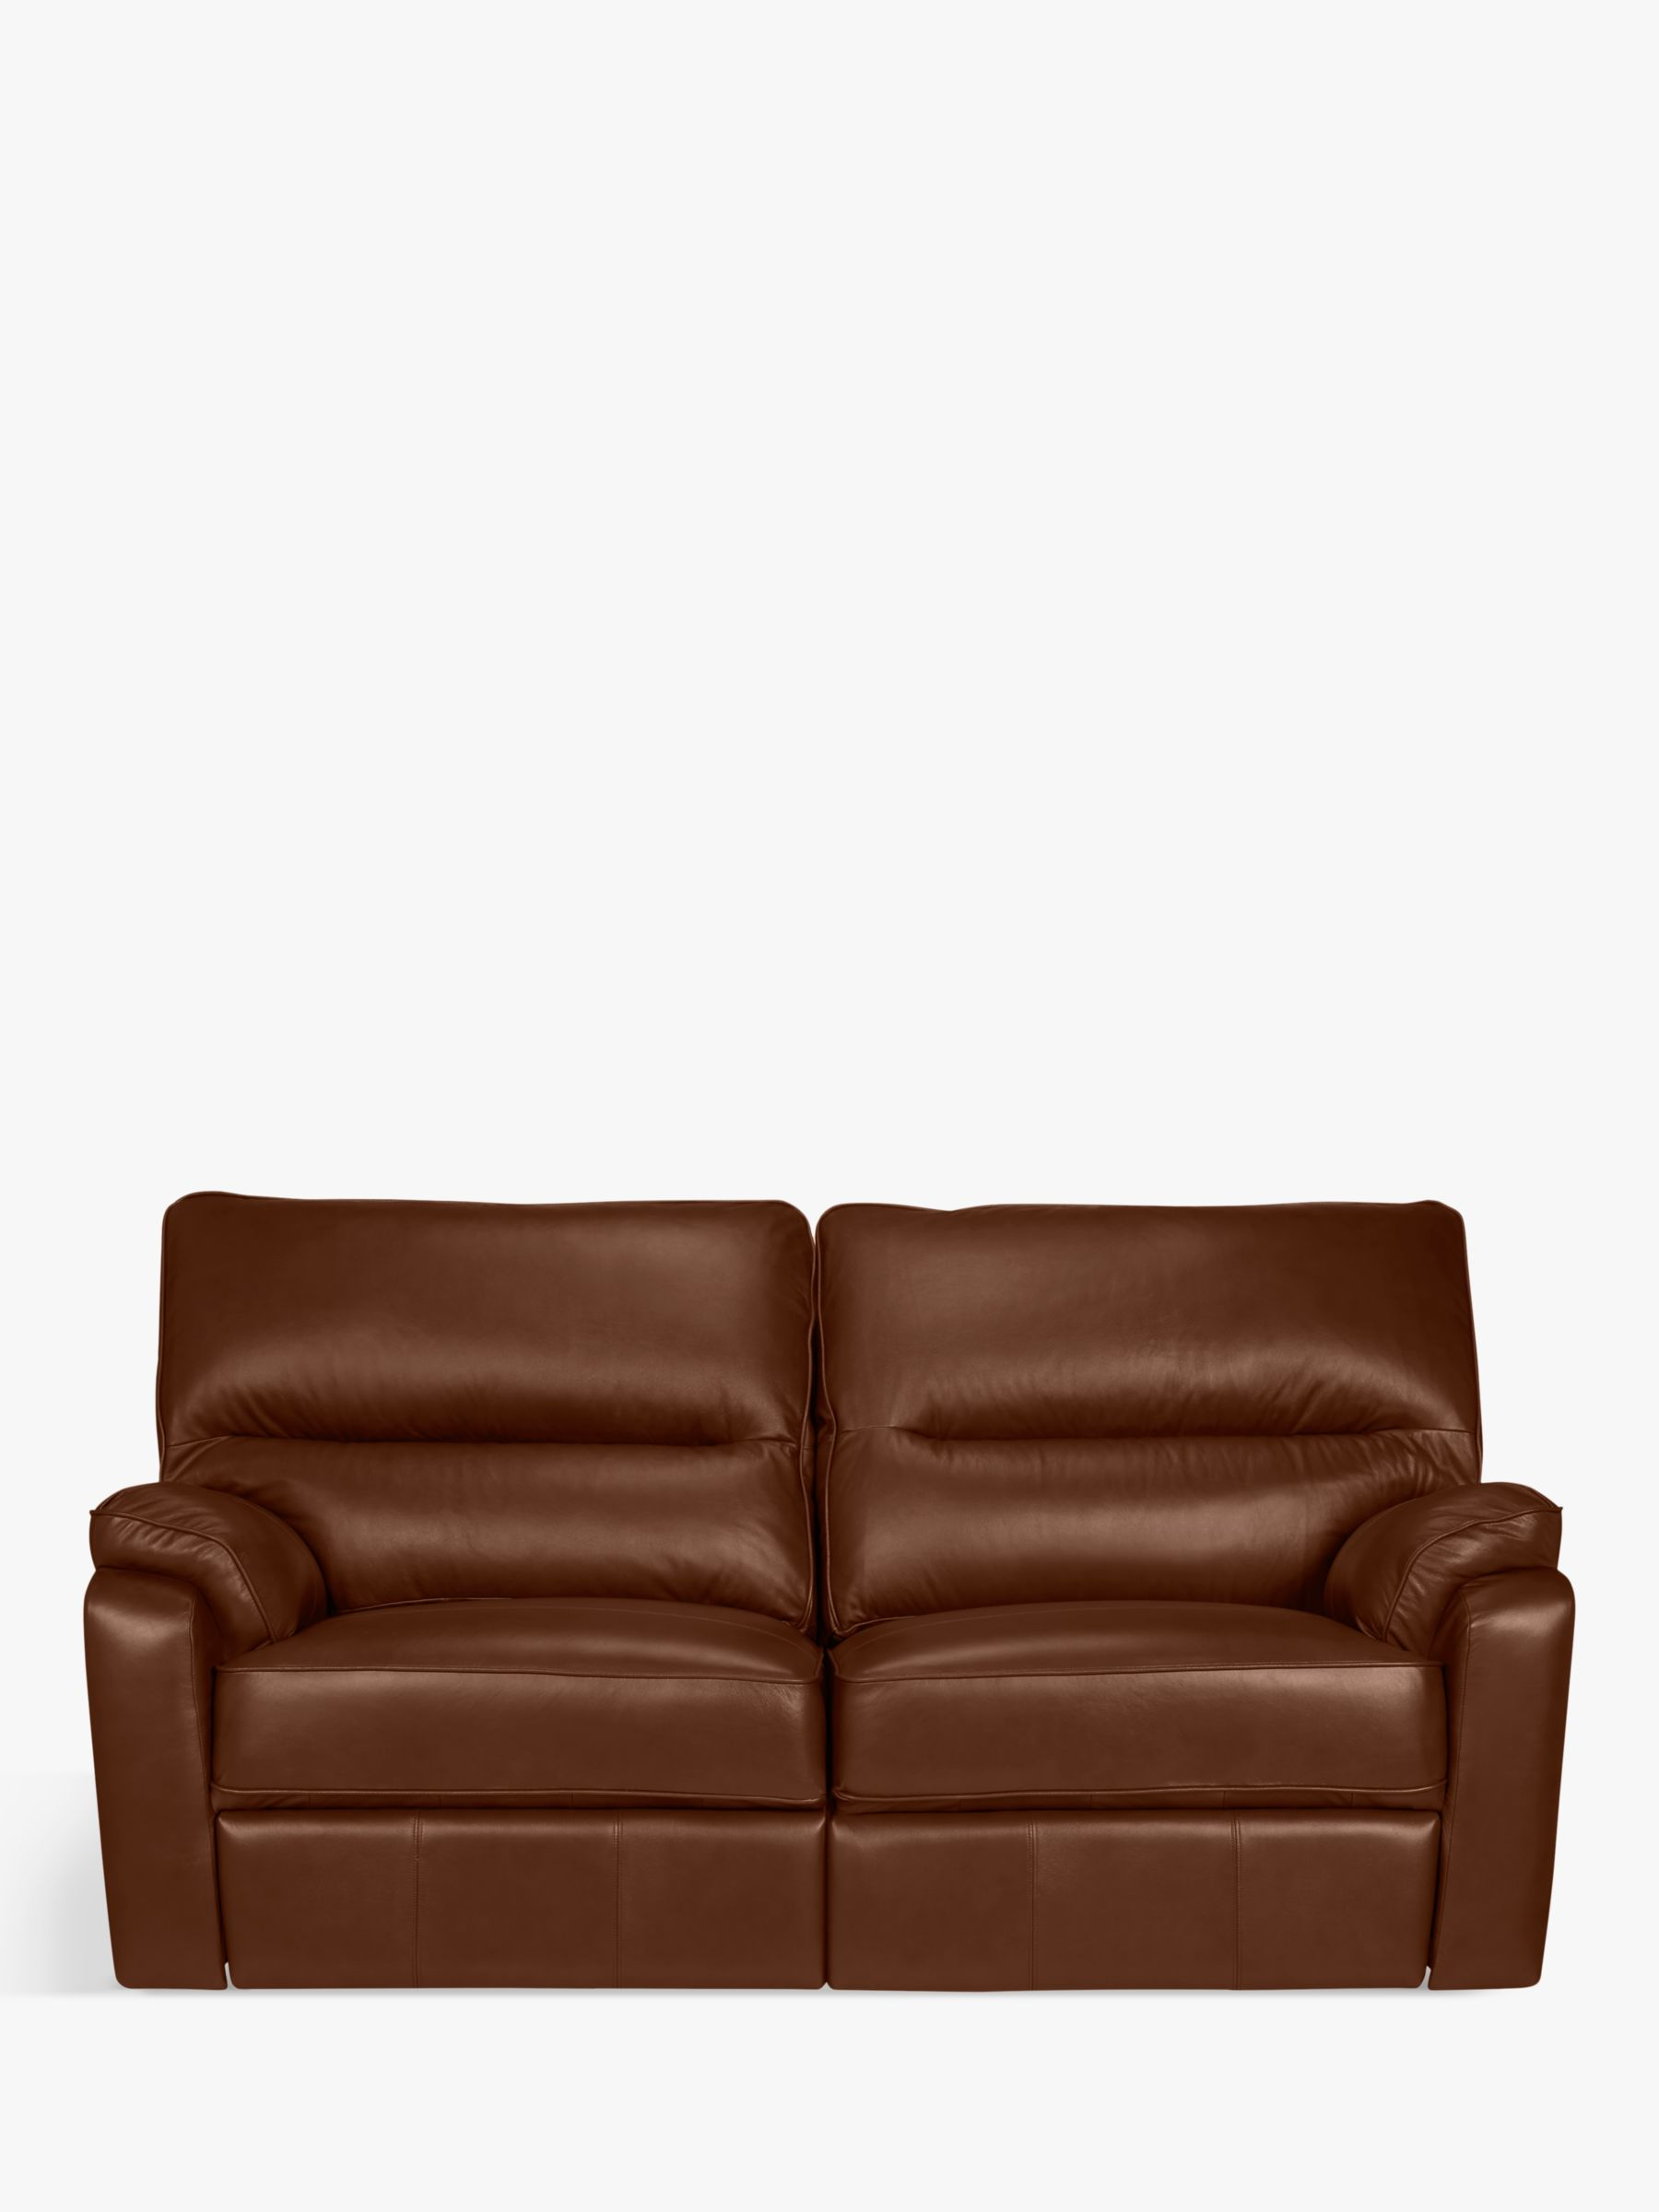 cheap brown leather 2 seater sofa on clearance gradschoolfairs